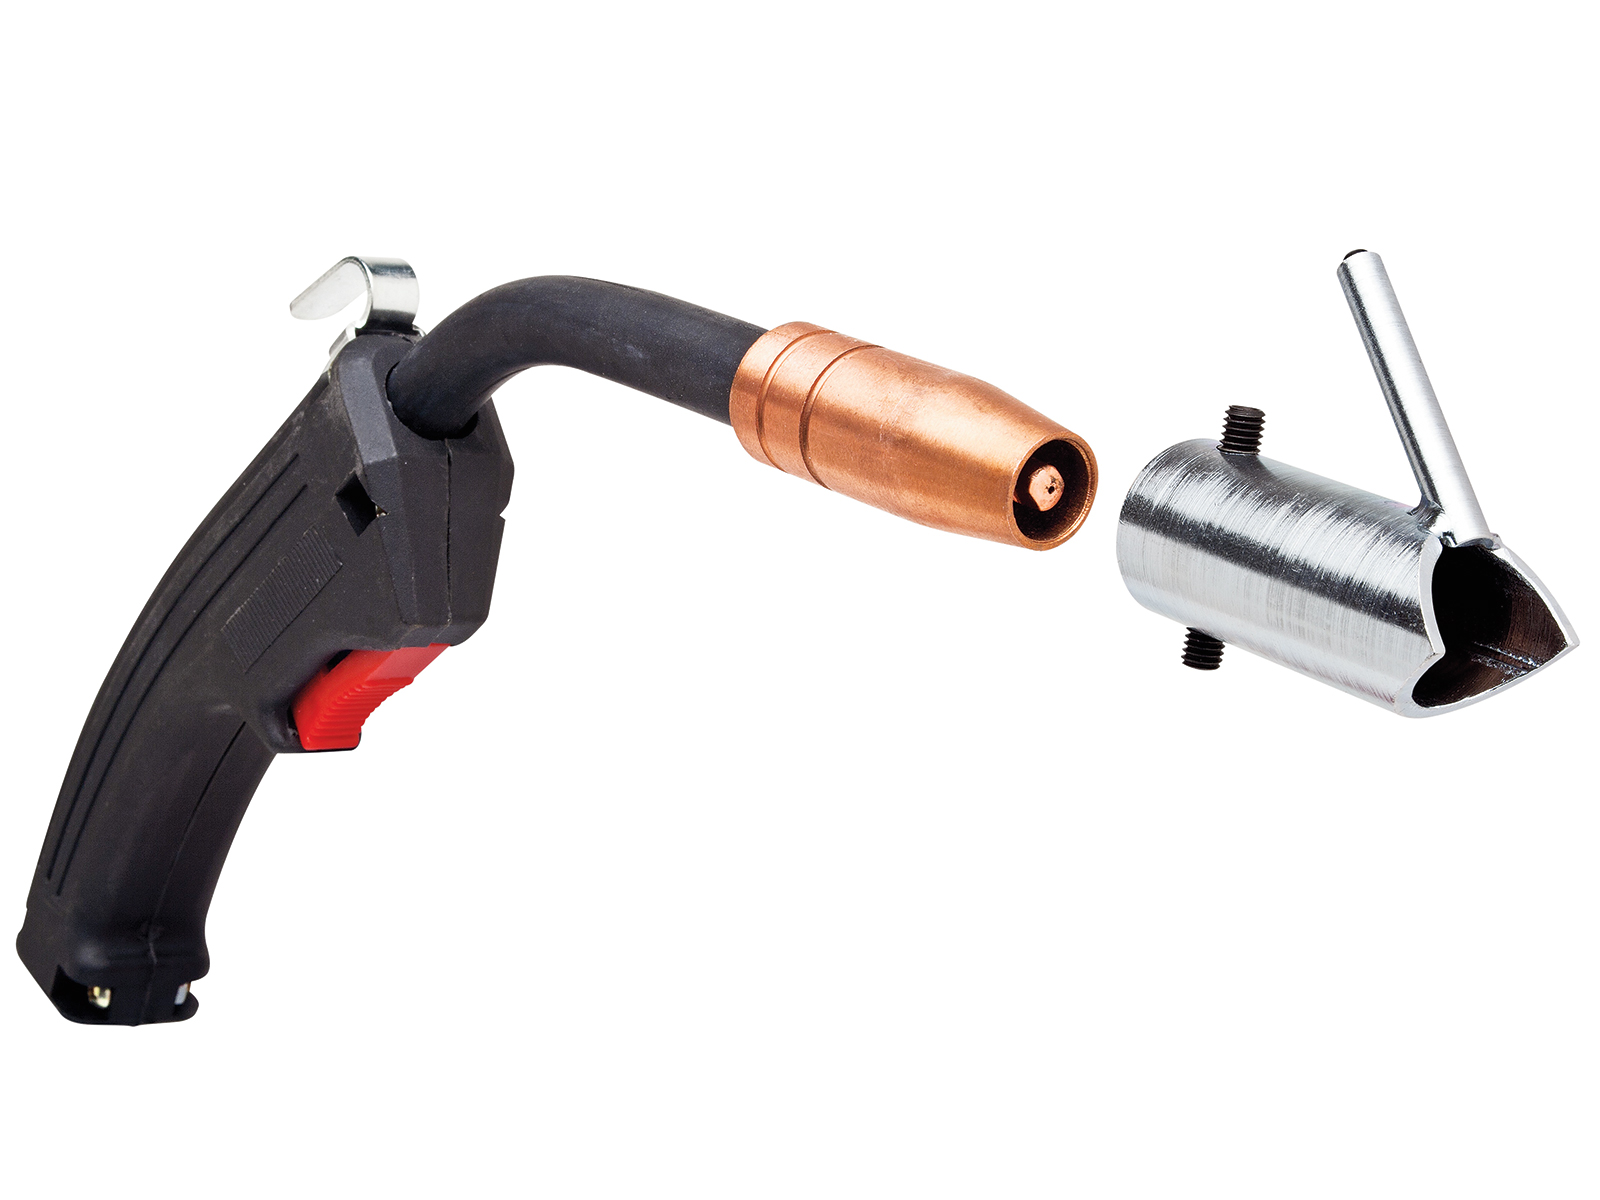 15. This MIG stud welding kit from Eastwood gives your MIG welder the ability to quickly weld studs onto a sheetmetal panel that can then be used to easily remove dents using a slide hammer.